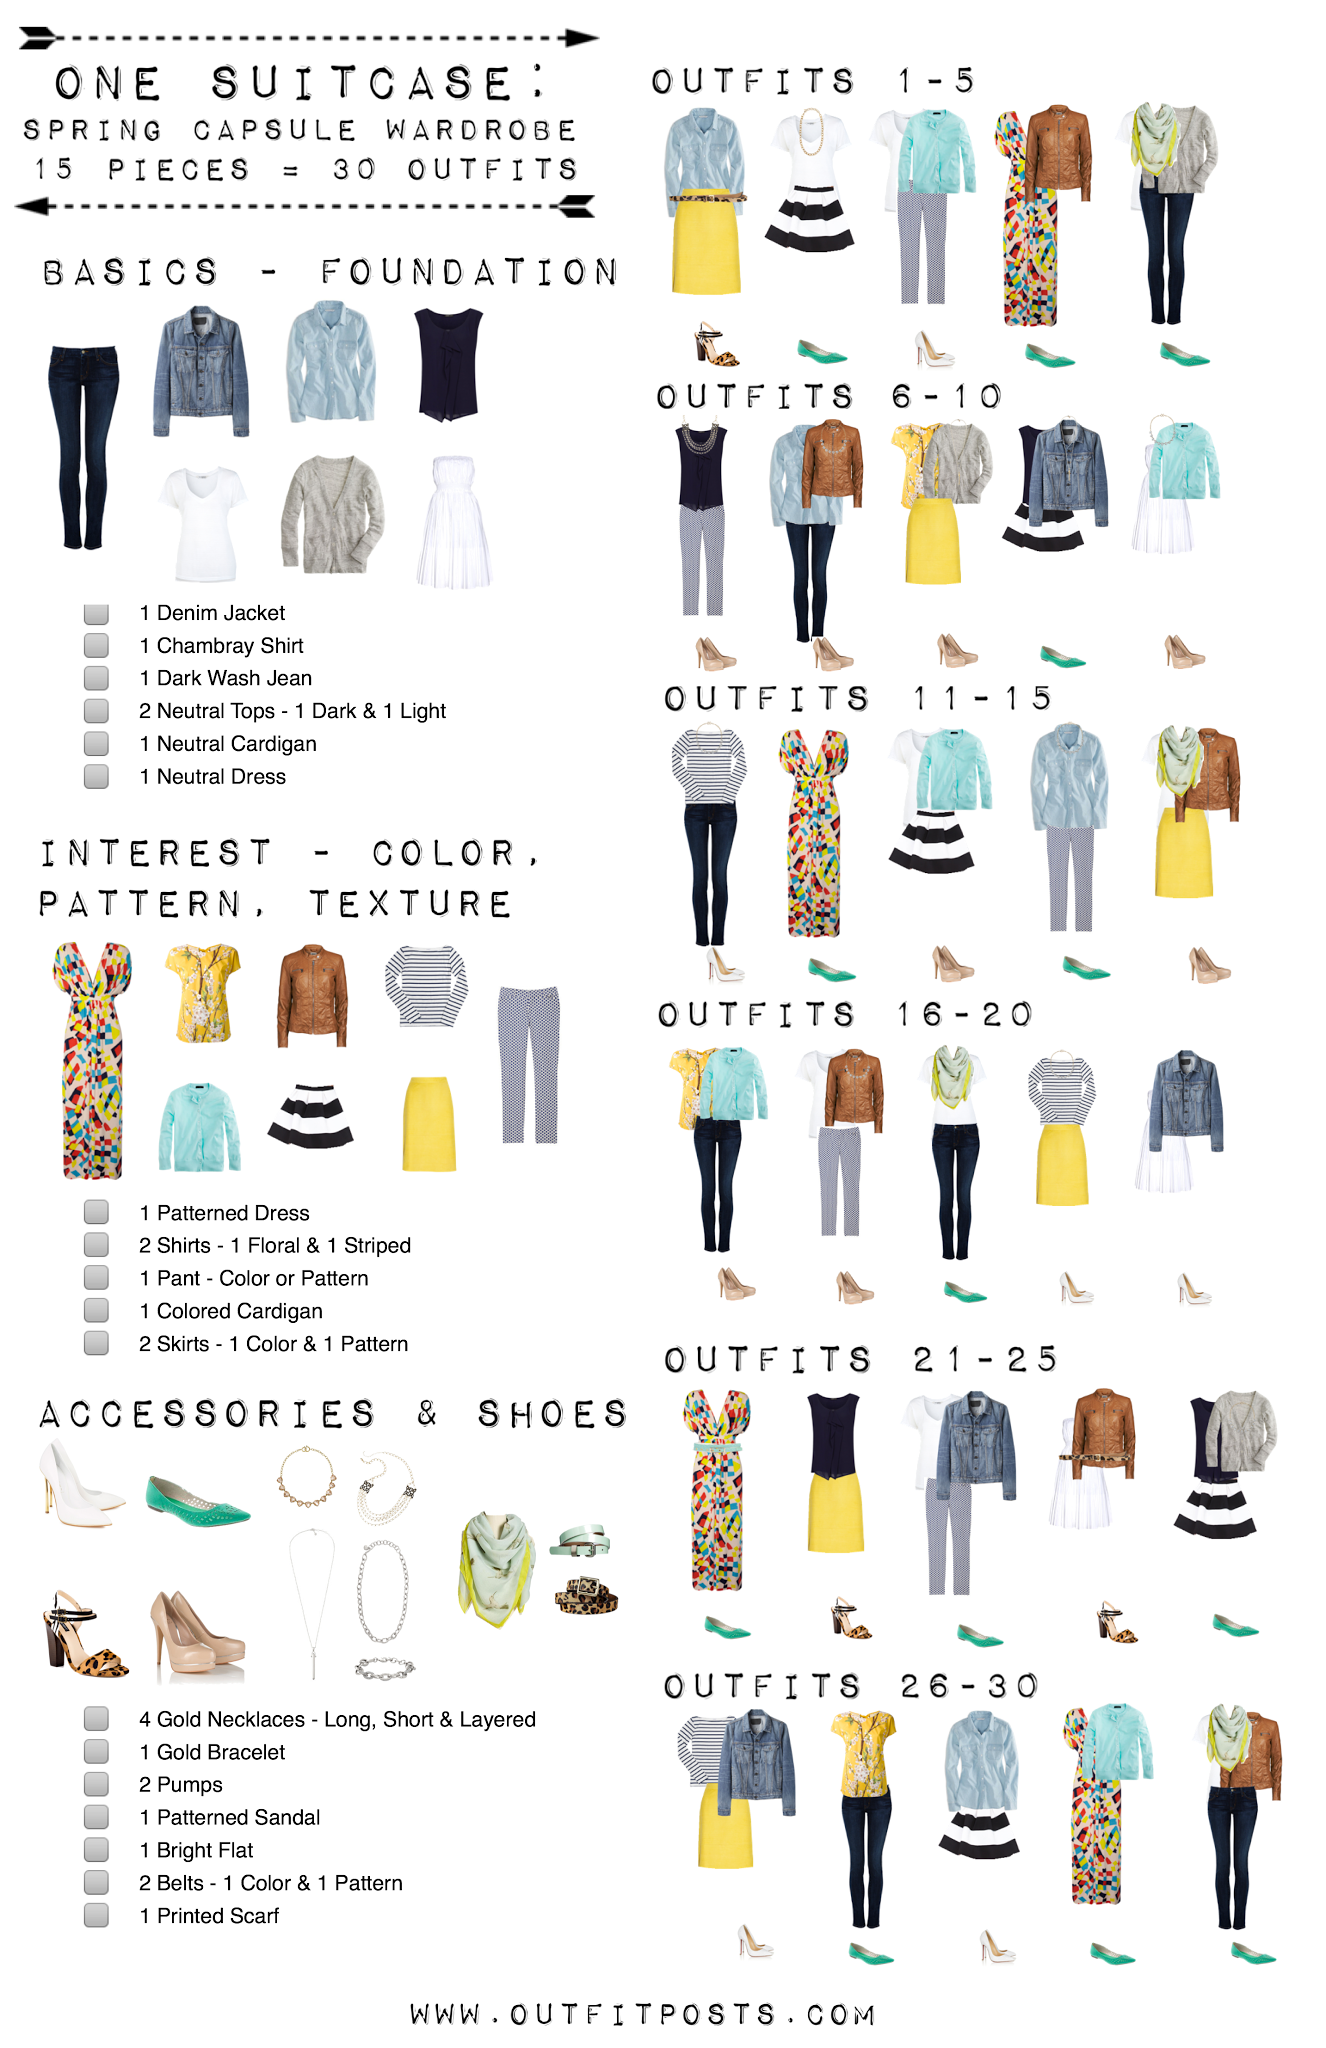 15 easy pieces for 30 summer outfits capsule wardrobe checklist